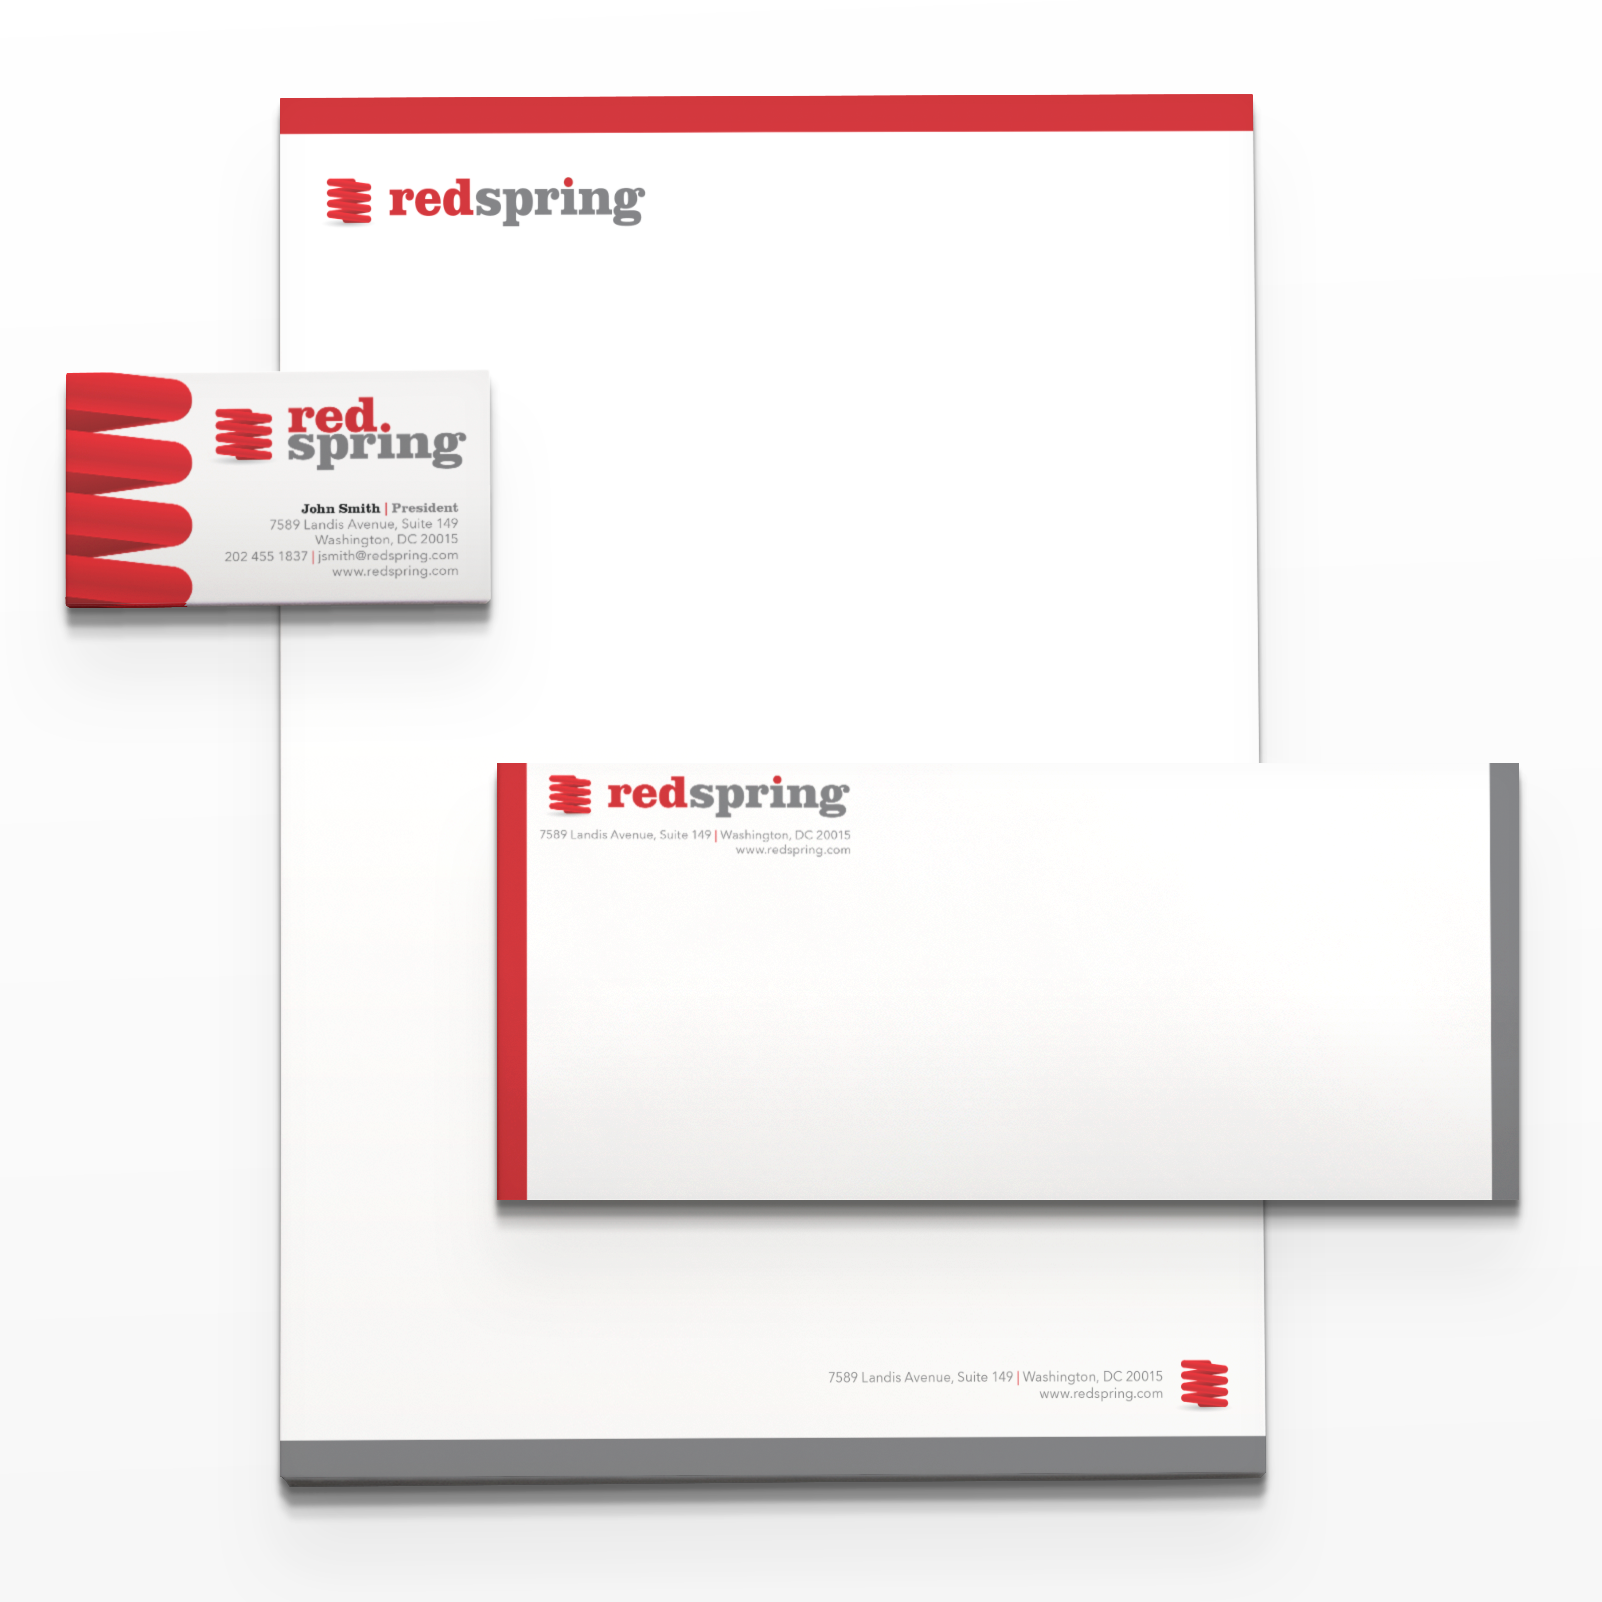 Tradeshow display exhibit design inspired iris imaging business cards letterhead envelopes forms reheart Gallery